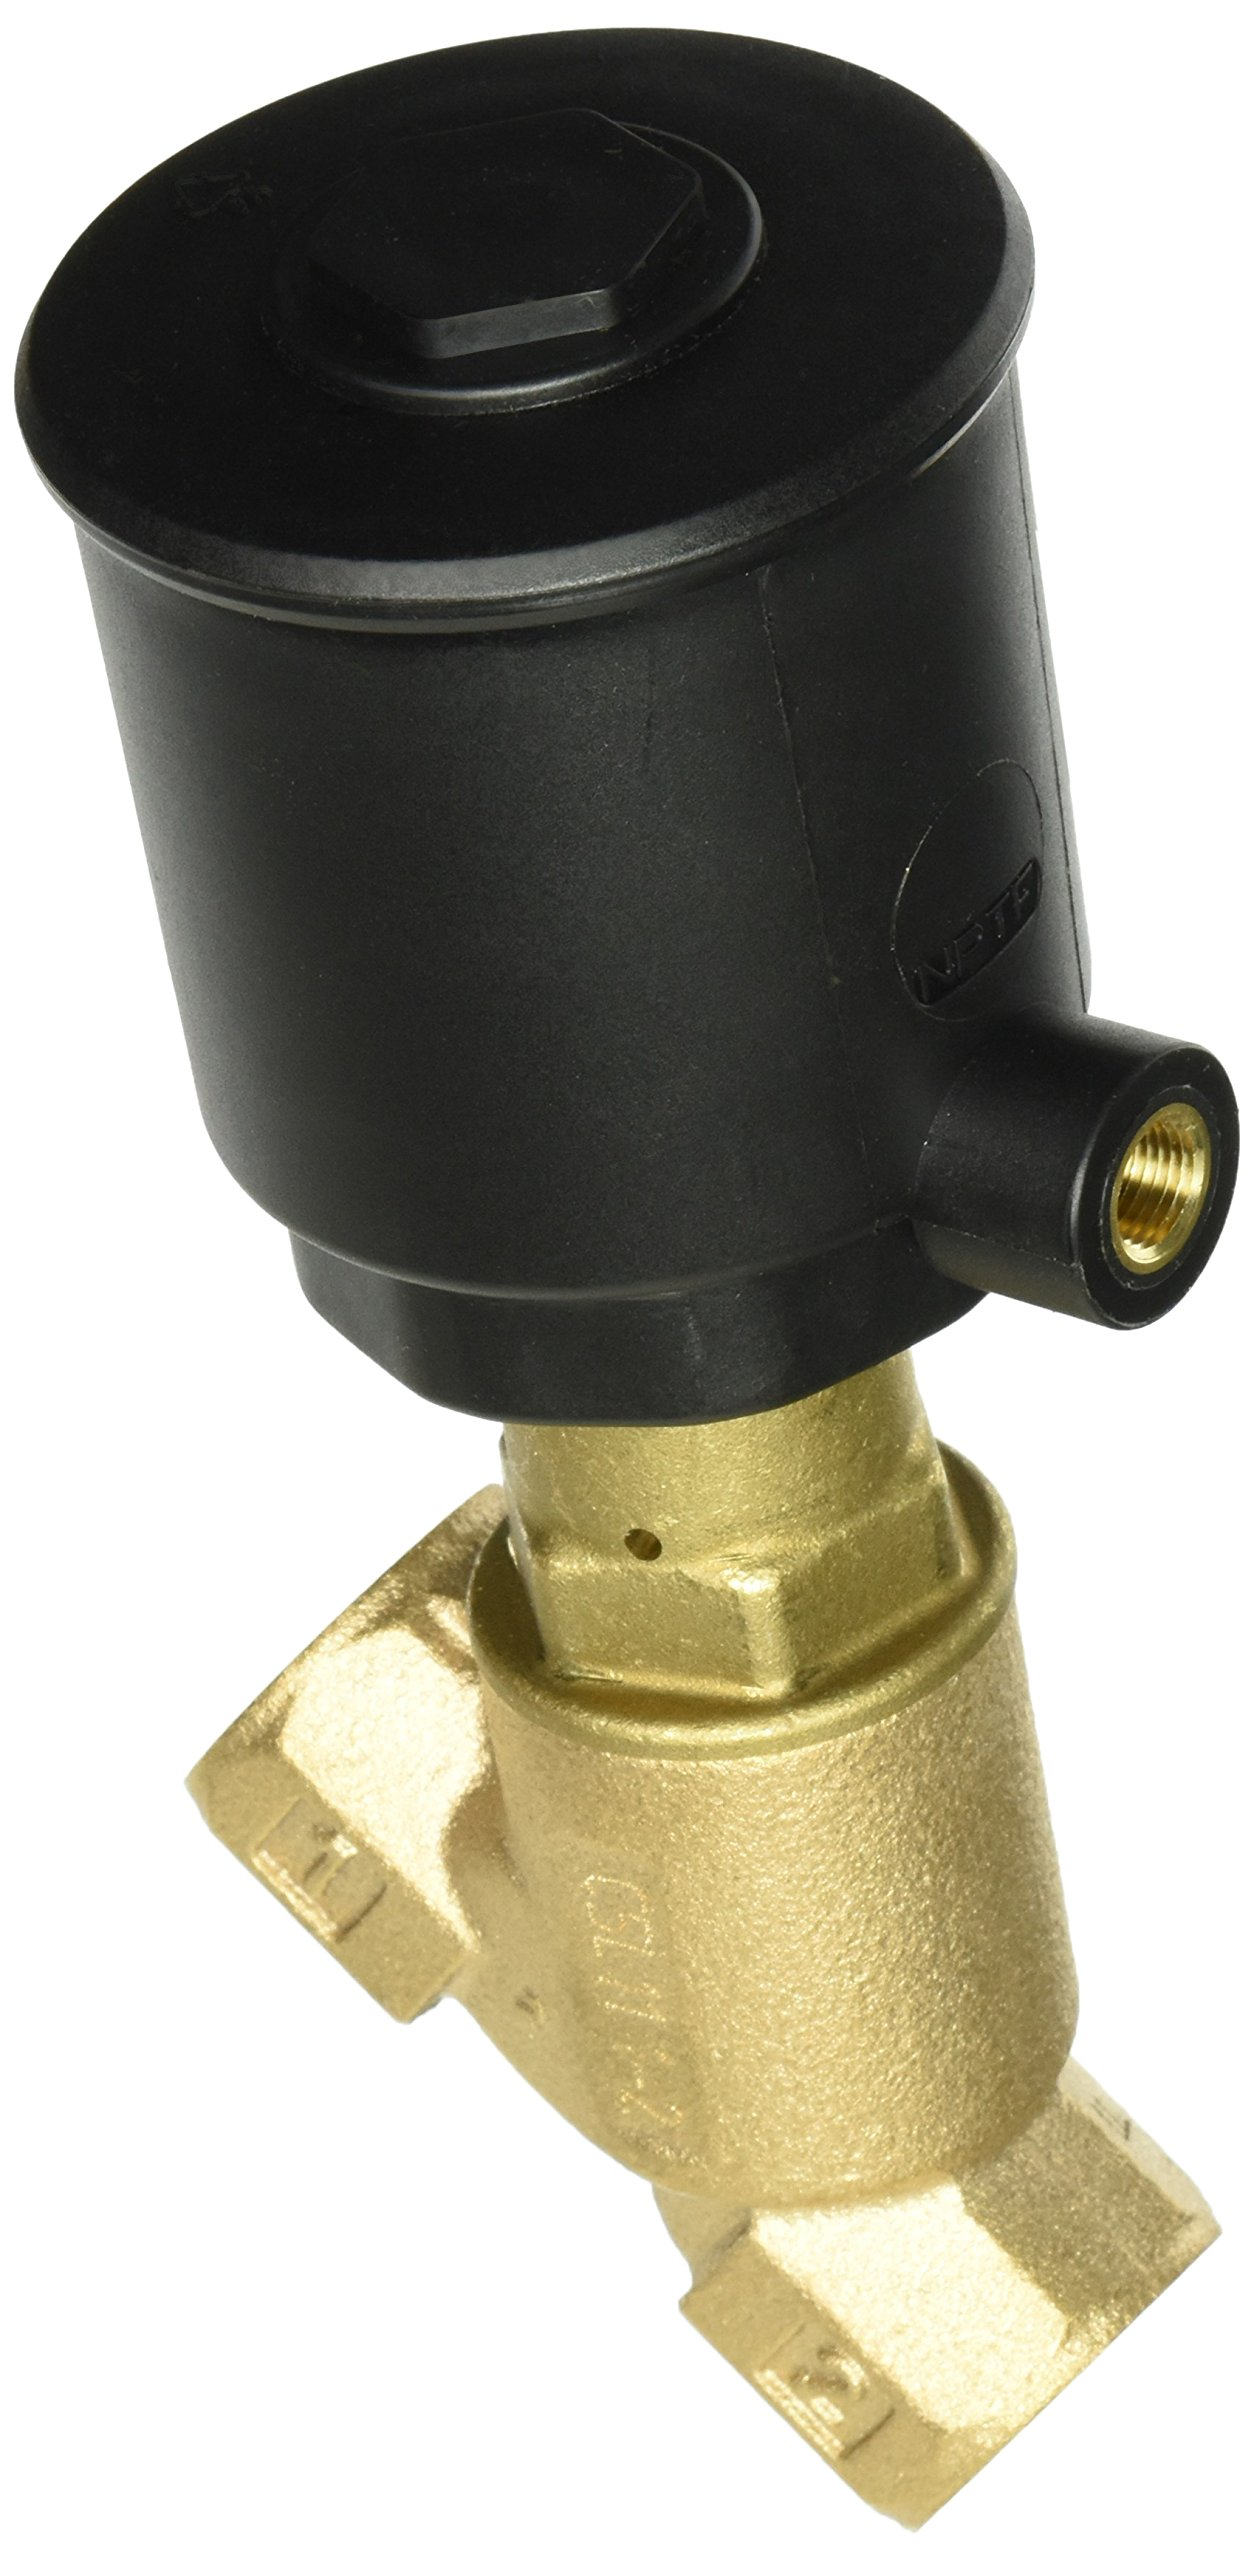 ASCO 8290A385 Bronze Body Air/Water Pilot Operated Angle Body Multi-Purpose Valve, 3/4'' Pipe Size, 2-Way Normally Closed, Entry Under the Disc, PTFE Sealing, 50 mm Valve Head Diameter, 3/4'' Orifice, 1